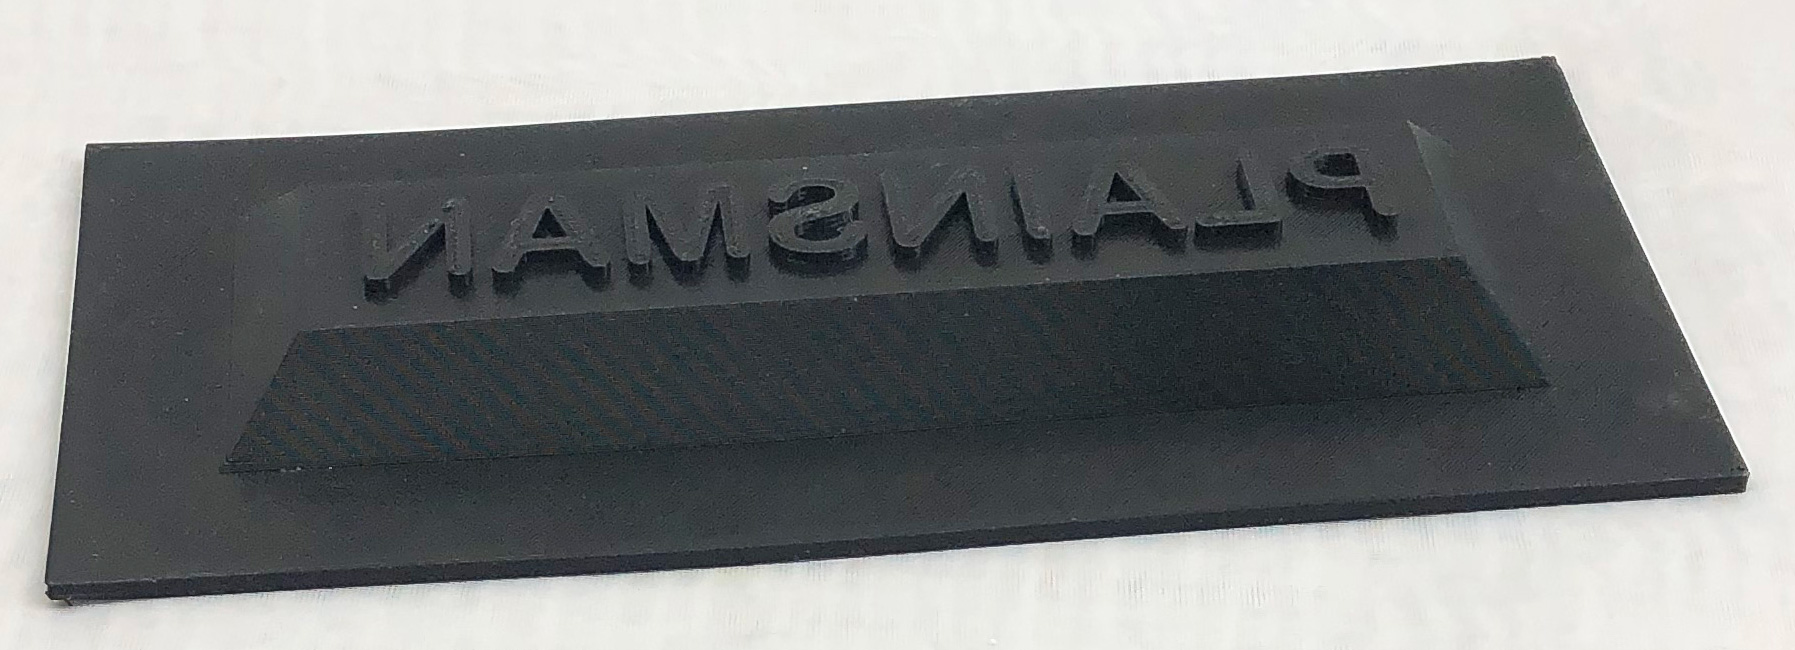 3D printed press mold to create inset face with logo